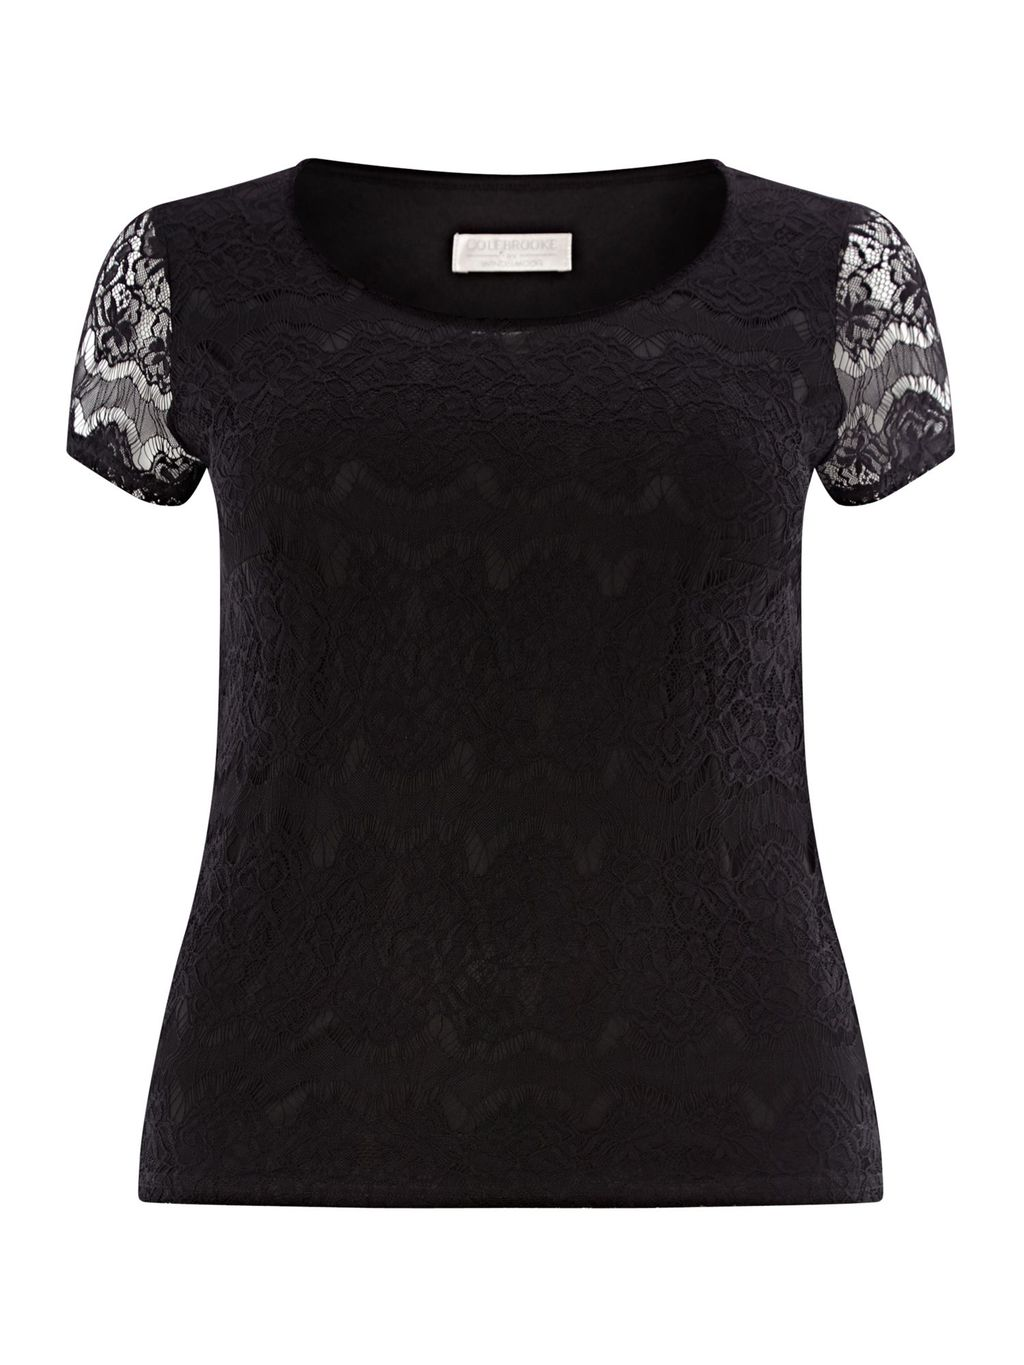 Black Lace Top, Black - neckline: round neck; pattern: plain; predominant colour: black; occasions: evening; length: standard; style: top; fibres: polyester/polyamide - stretch; fit: body skimming; sleeve length: short sleeve; sleeve style: standard; texture group: lace; pattern type: fabric; pattern size: standard; embellishment: lace; season: a/w 2015; wardrobe: event